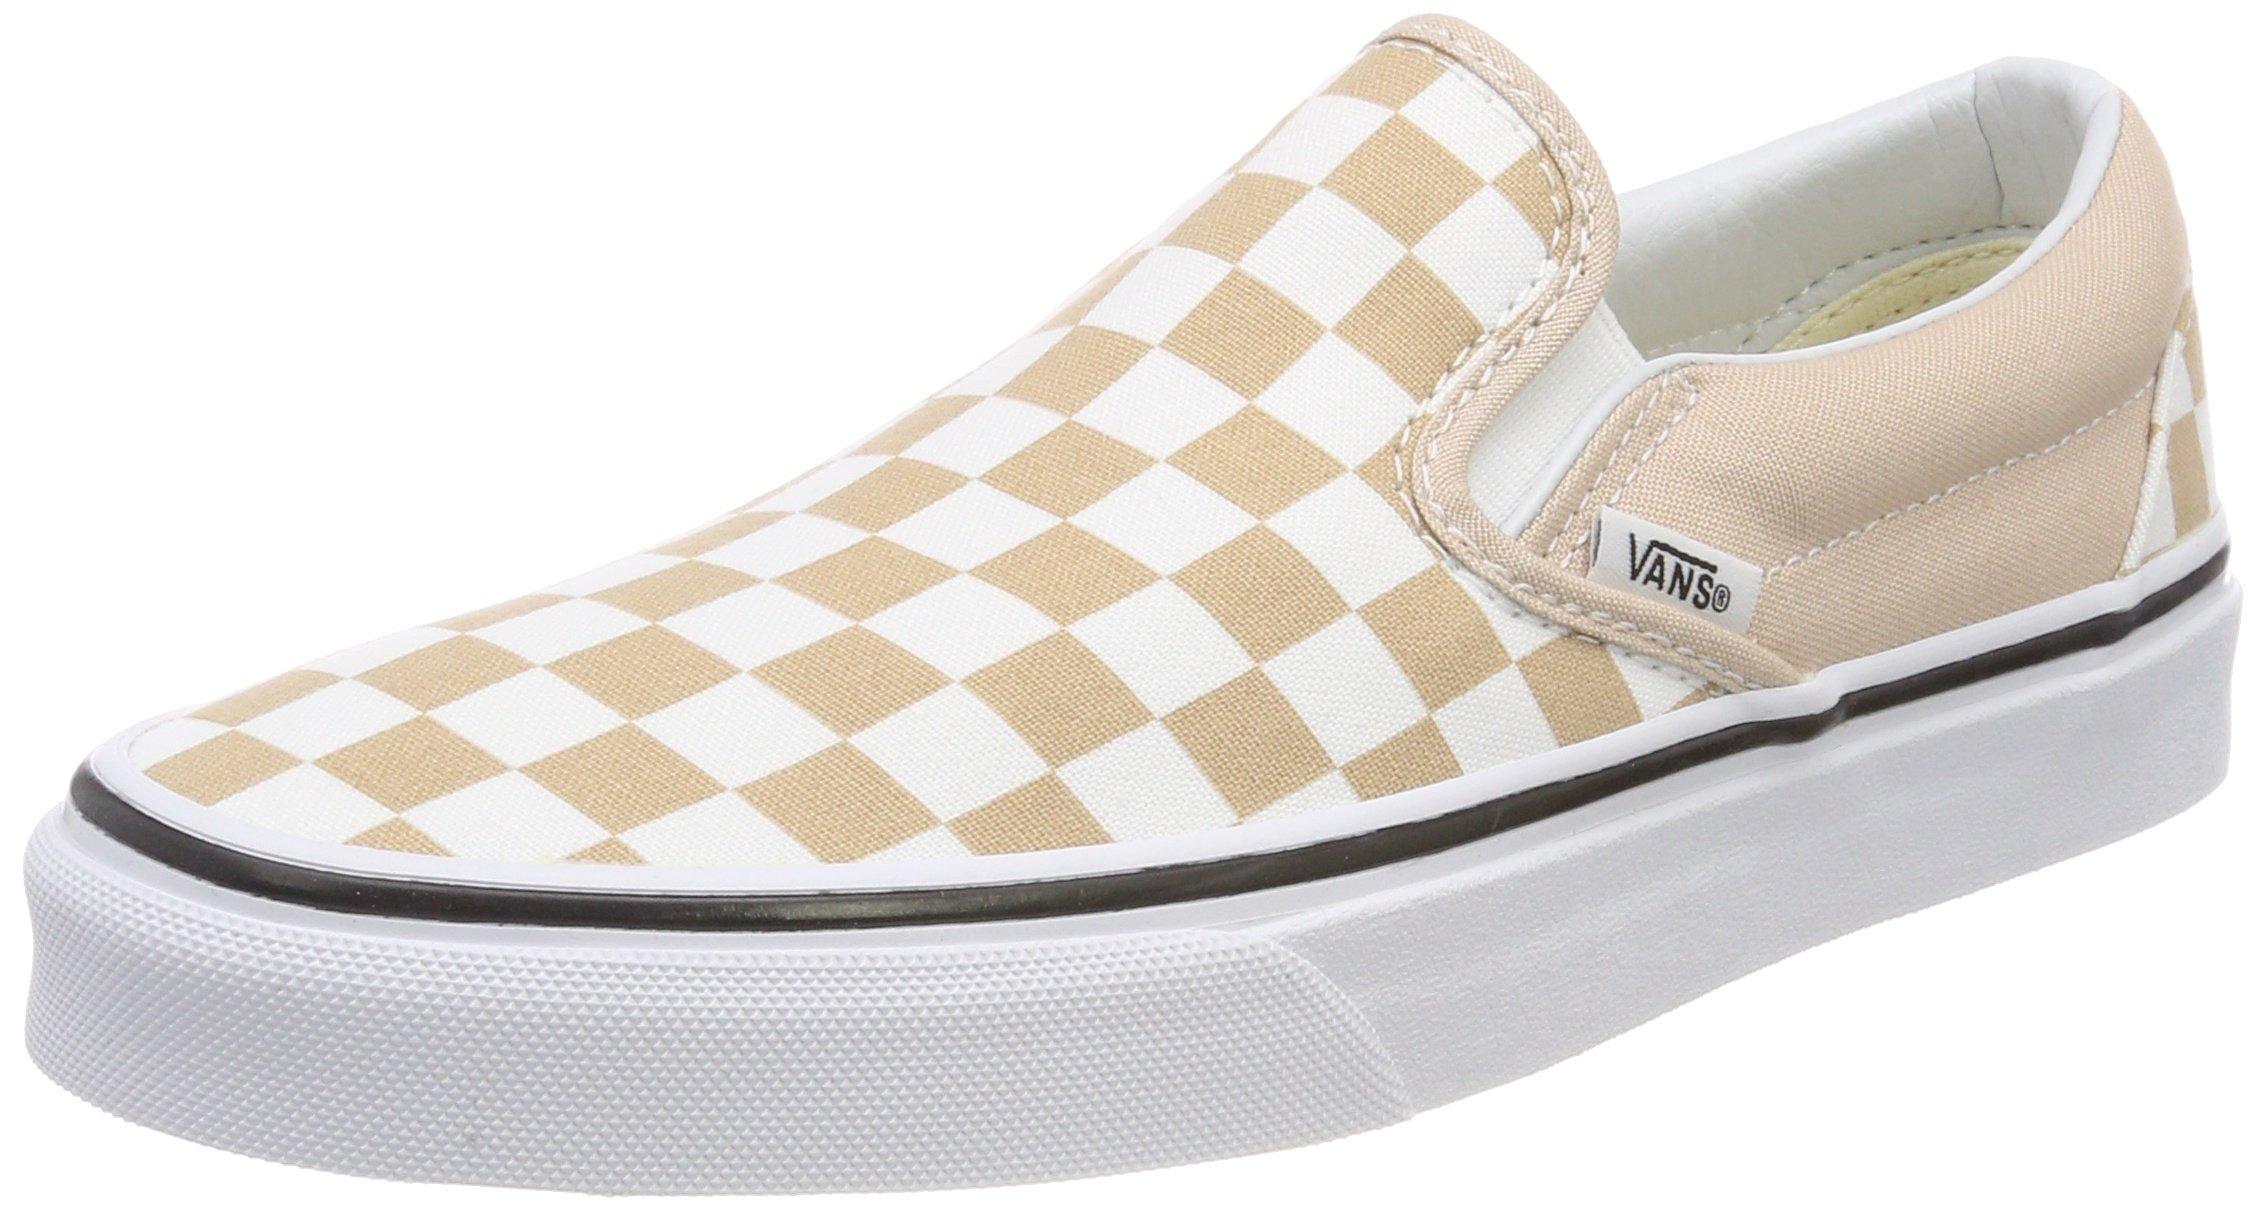 3be35eaf4f Get Quotations · Vans Classic Slip-on Checkerboard Unisex Slip On